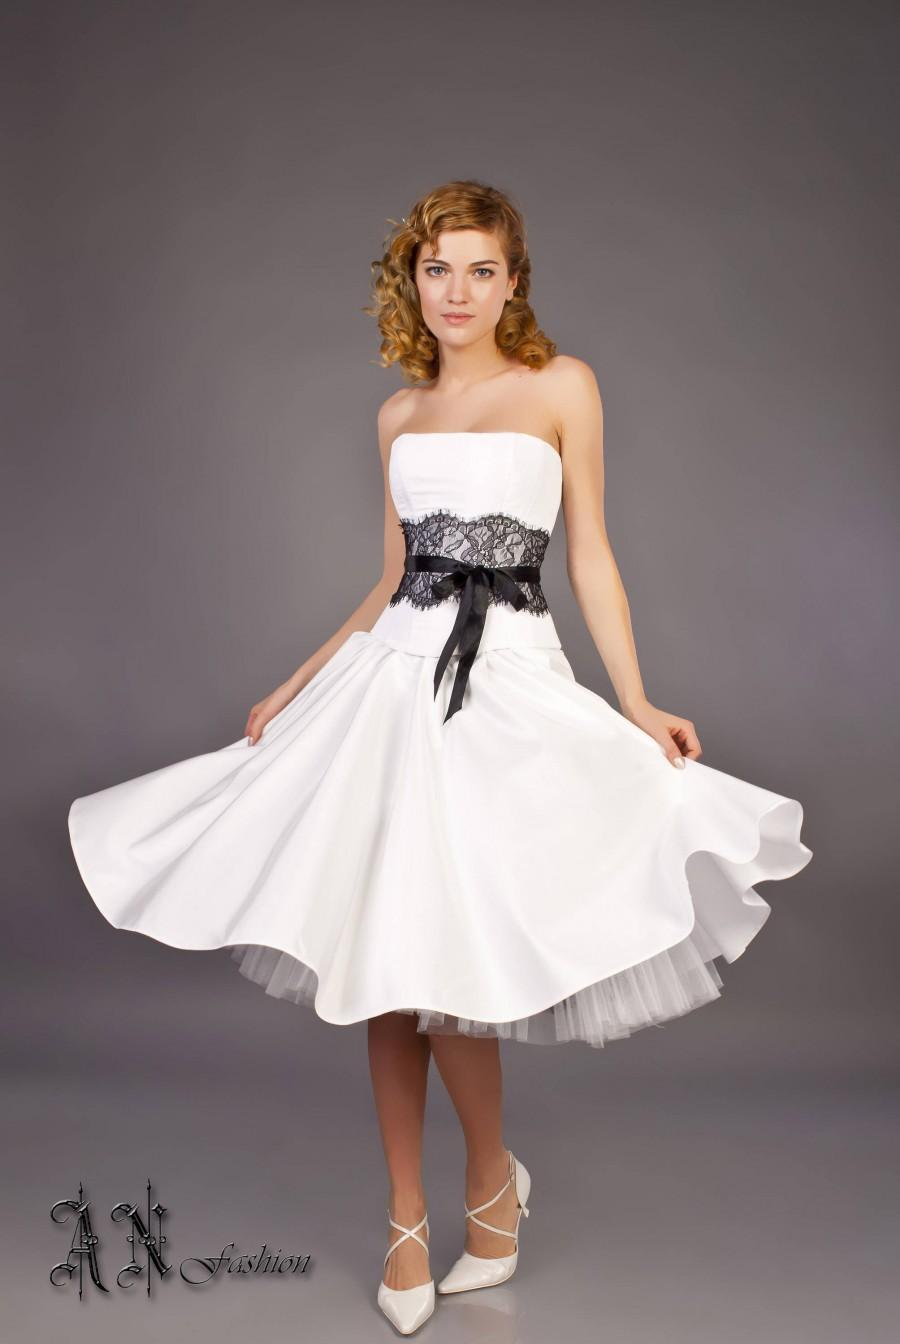 Black White A Line Wedding Dress Short Wedding Dress Tea Length